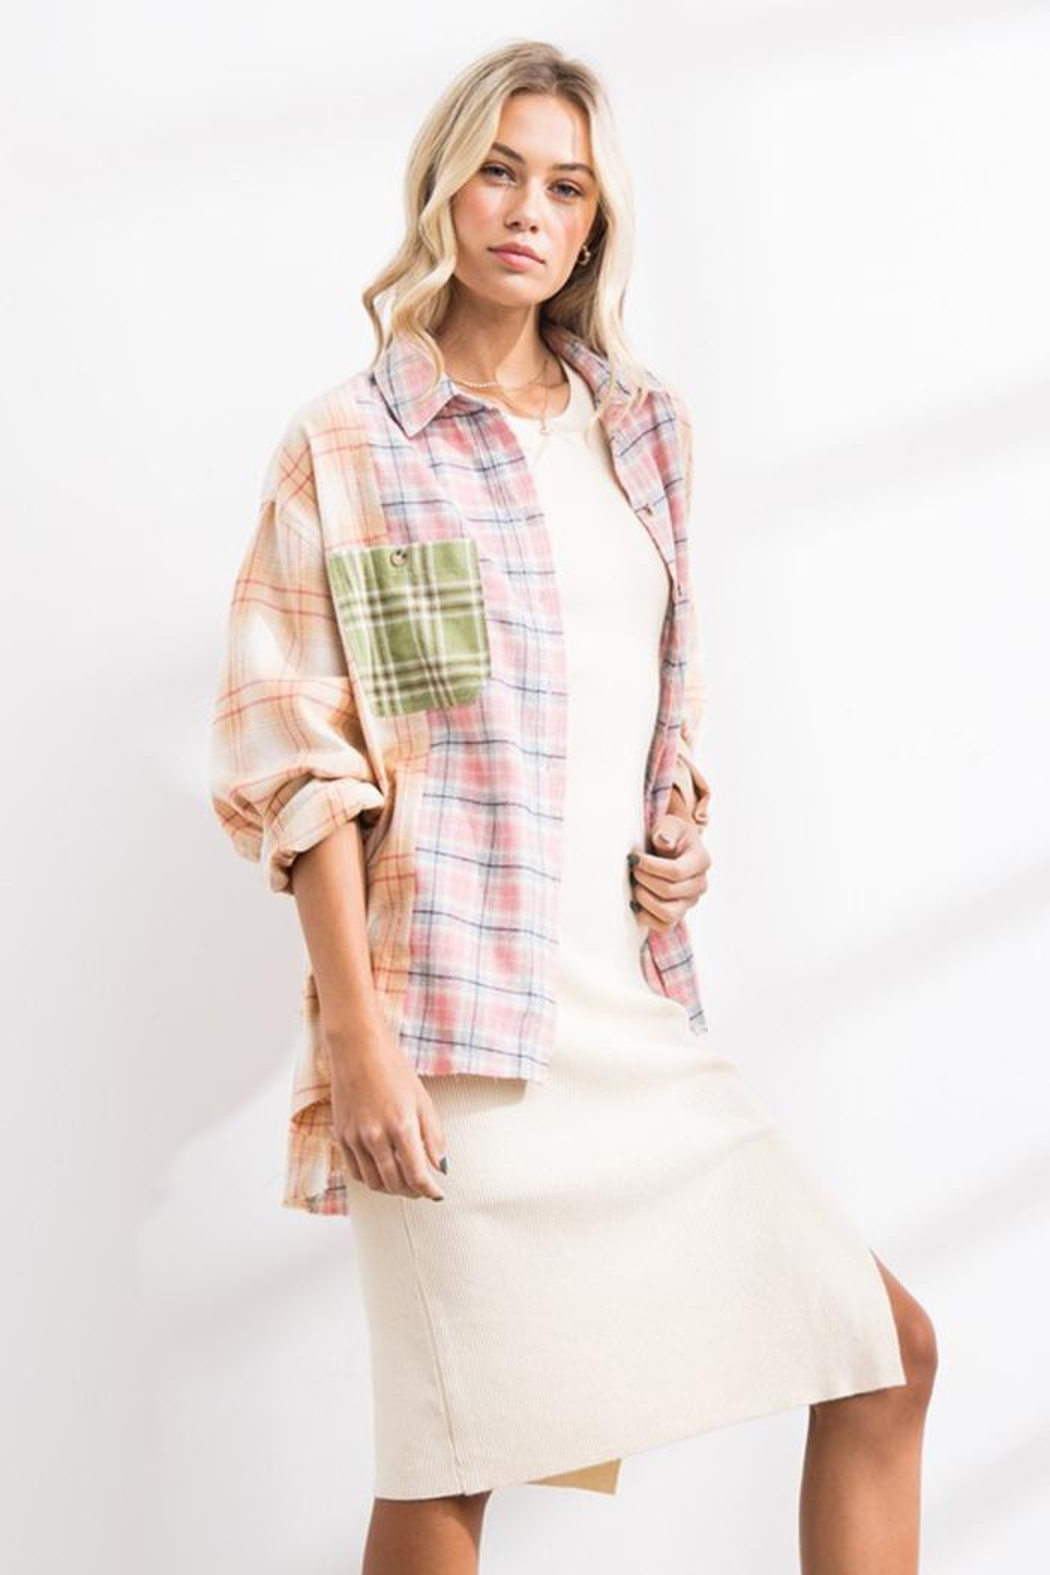 Papermoon Patchwork Oversized Soft Cotton Plaid Button Down Shirt Top - Side Cropped Image